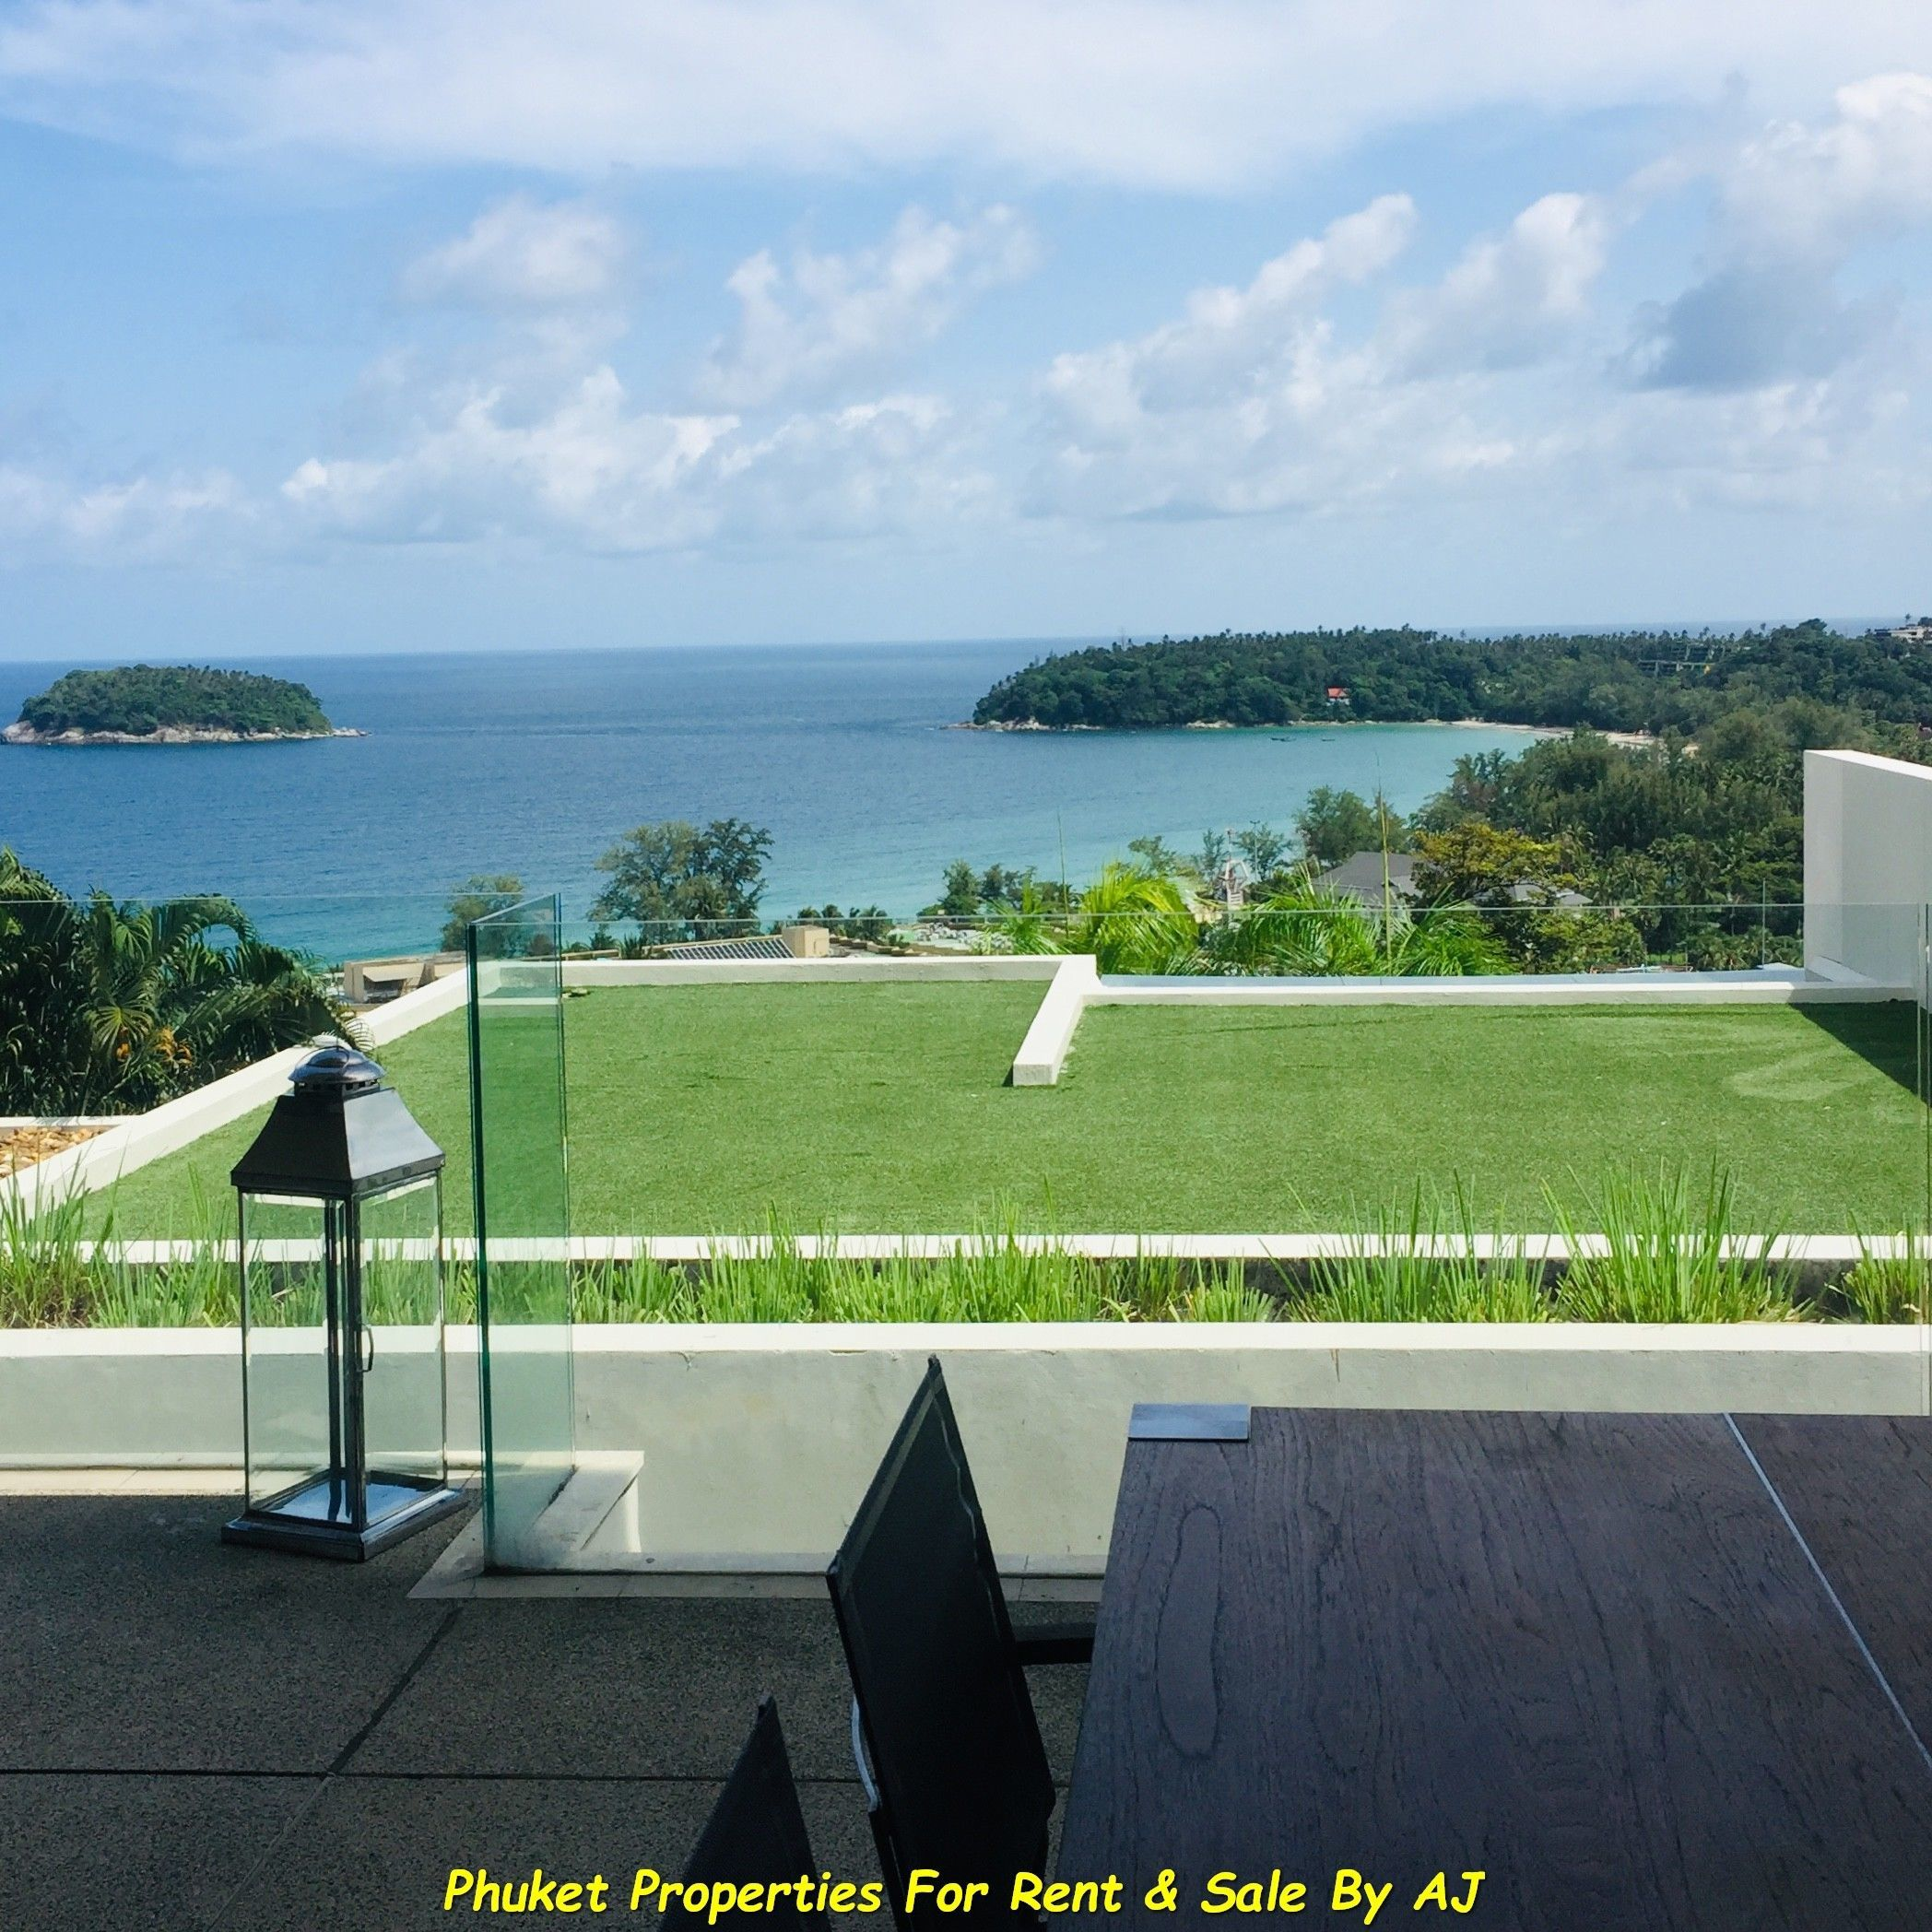 2 Bedrooms modern style at Kata Beach